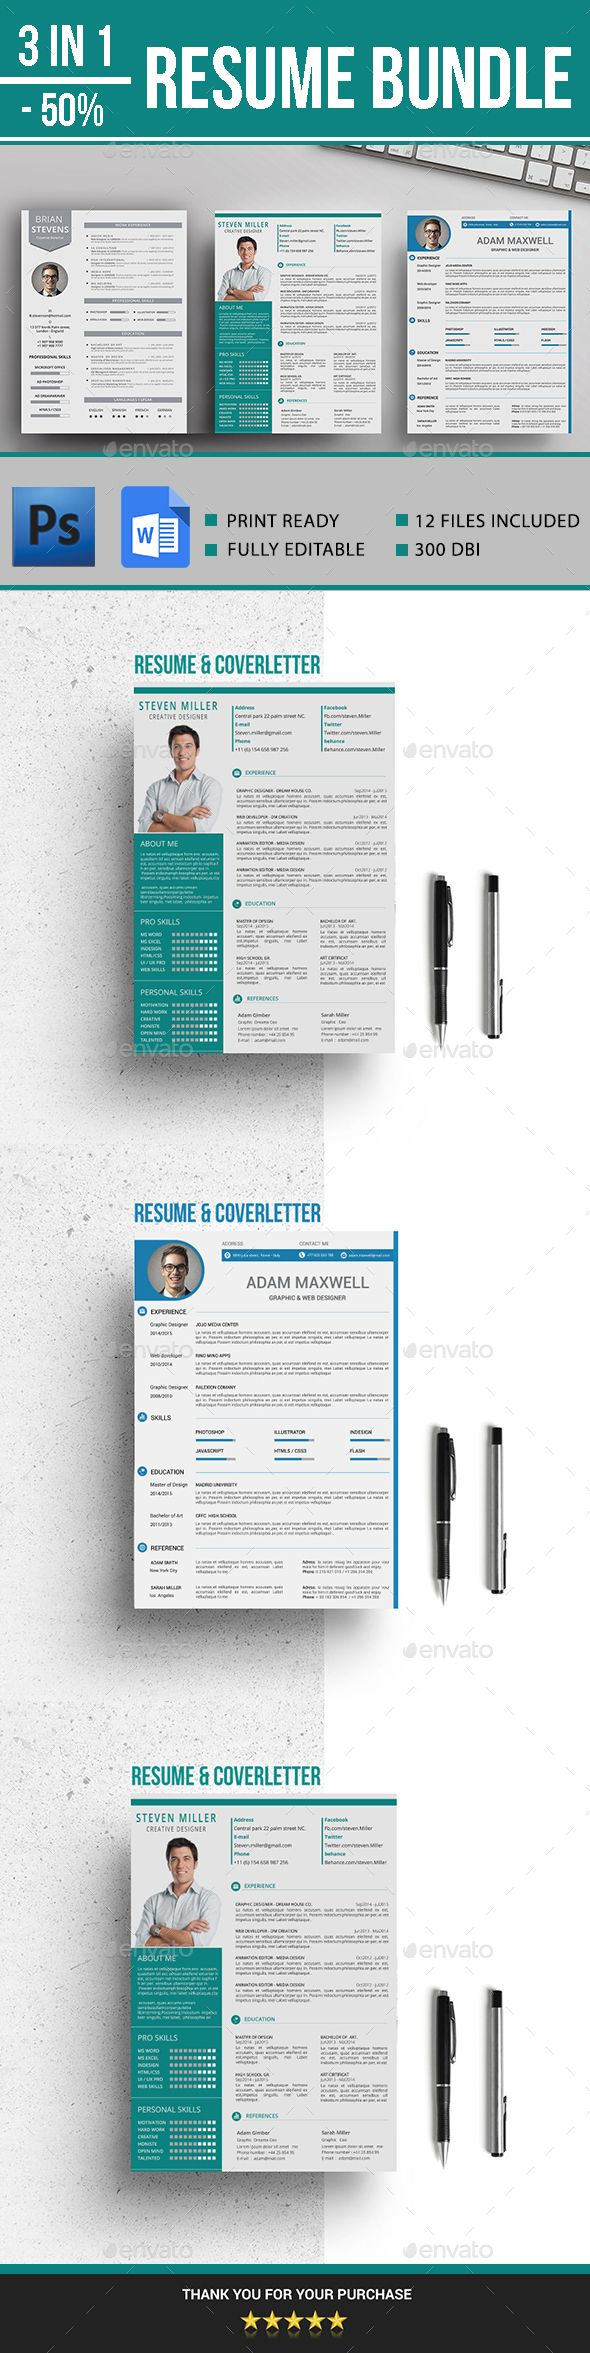 Resume 33 best CV images on Pinterest